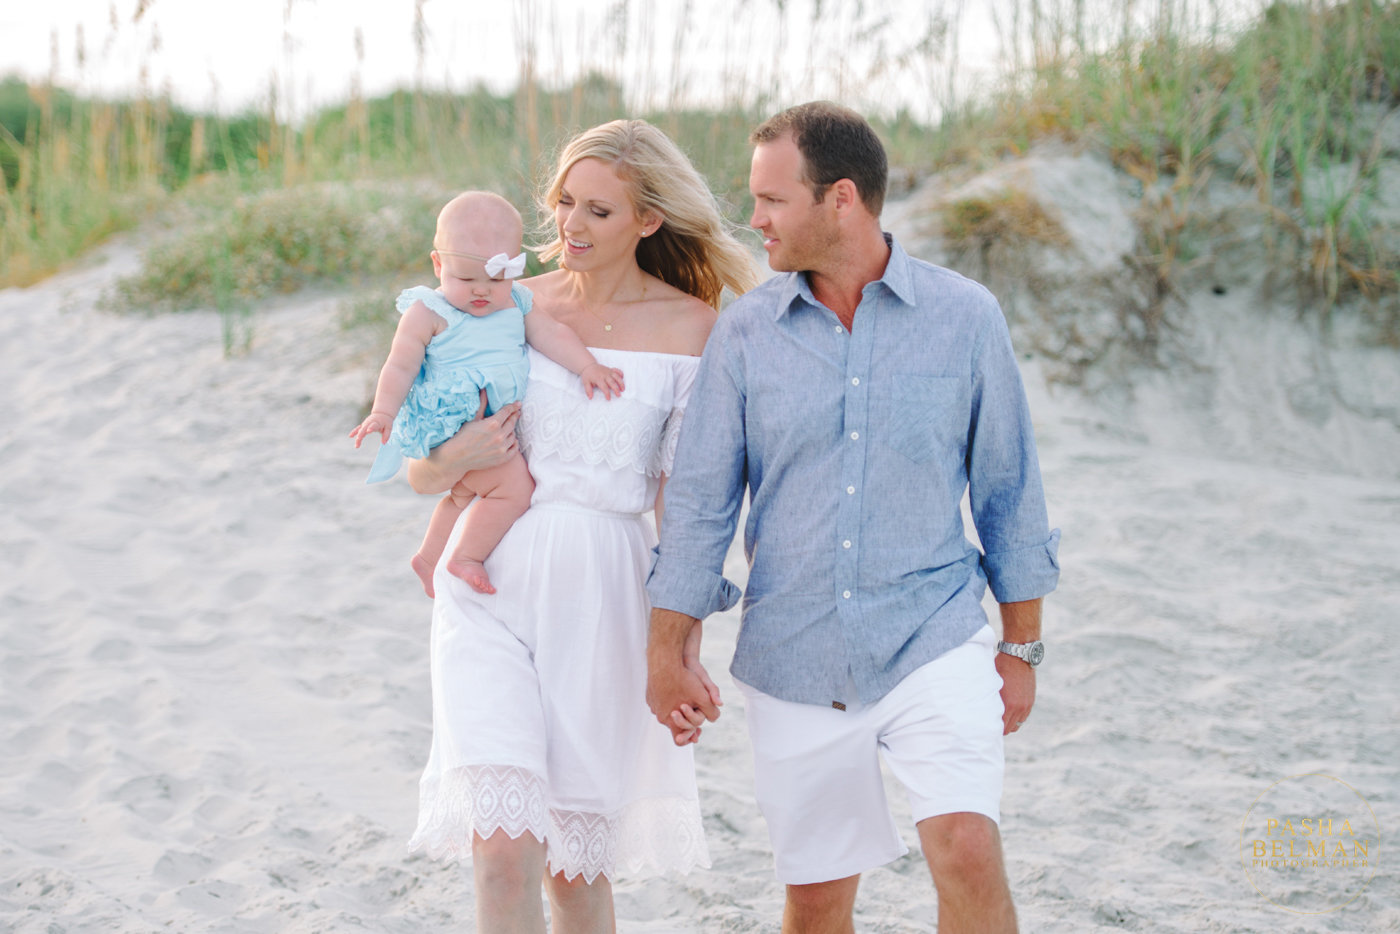 Family Pictures | Family Beach Photography | Myrtle Beach Family Photography by Top Family Photographers in Myrtle Beach and Pawleys Island